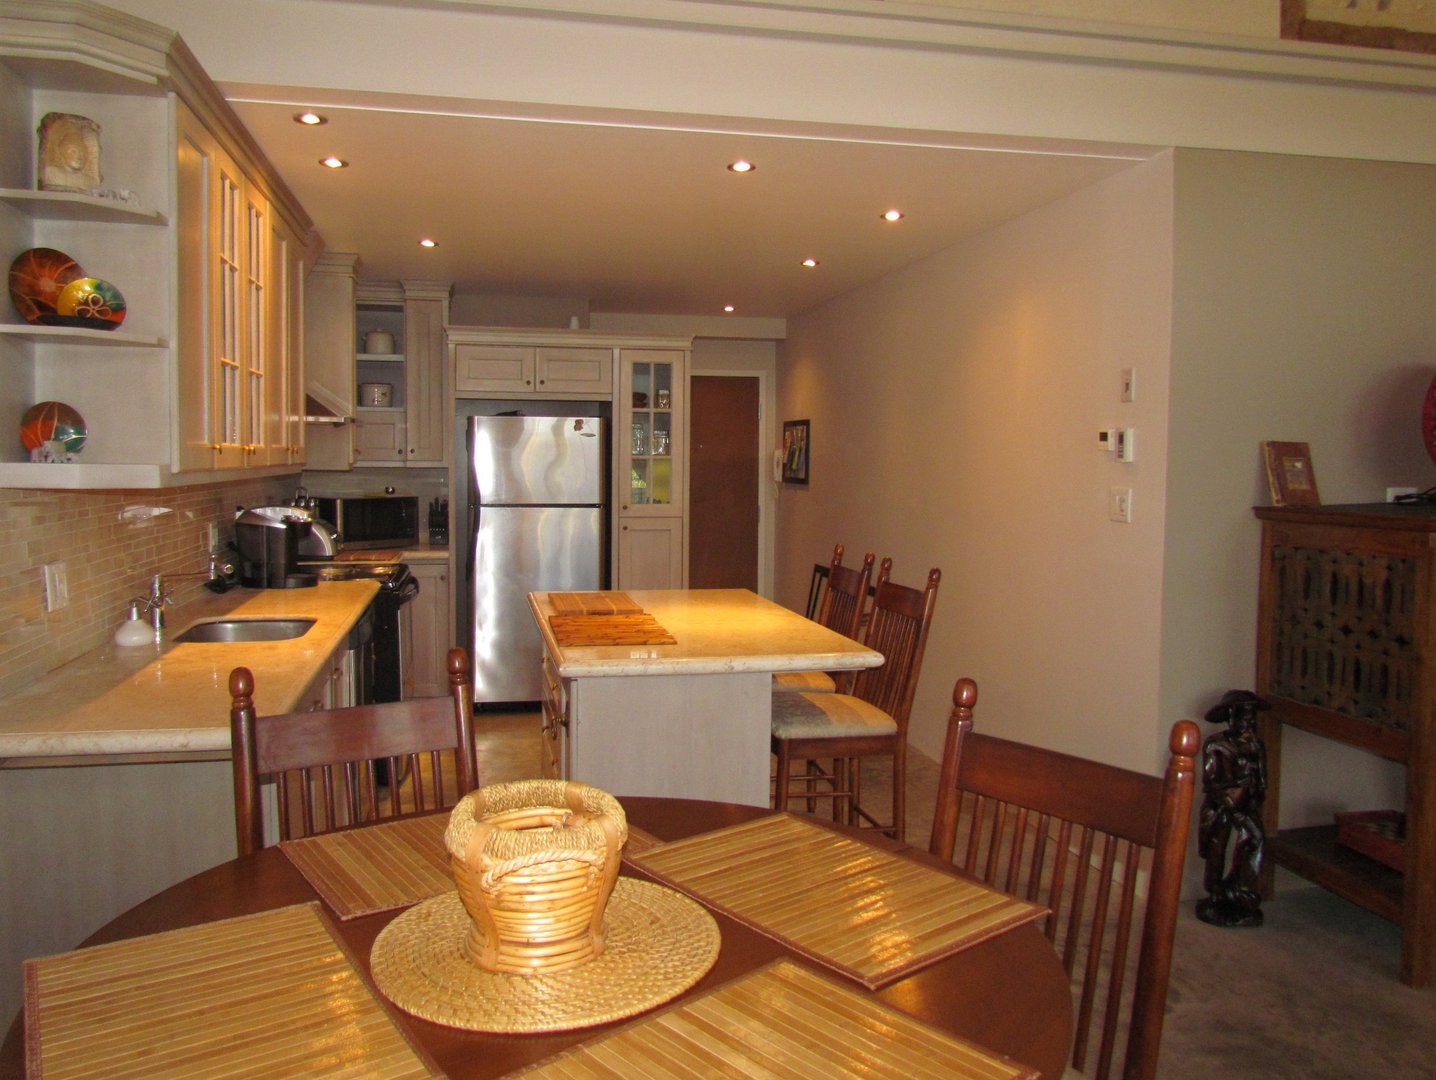 Apartment for rent at 8, Maple, Knowlton, QC. This is the kitchen with kitchen island, stainless steel, kitchen bar and carpet.